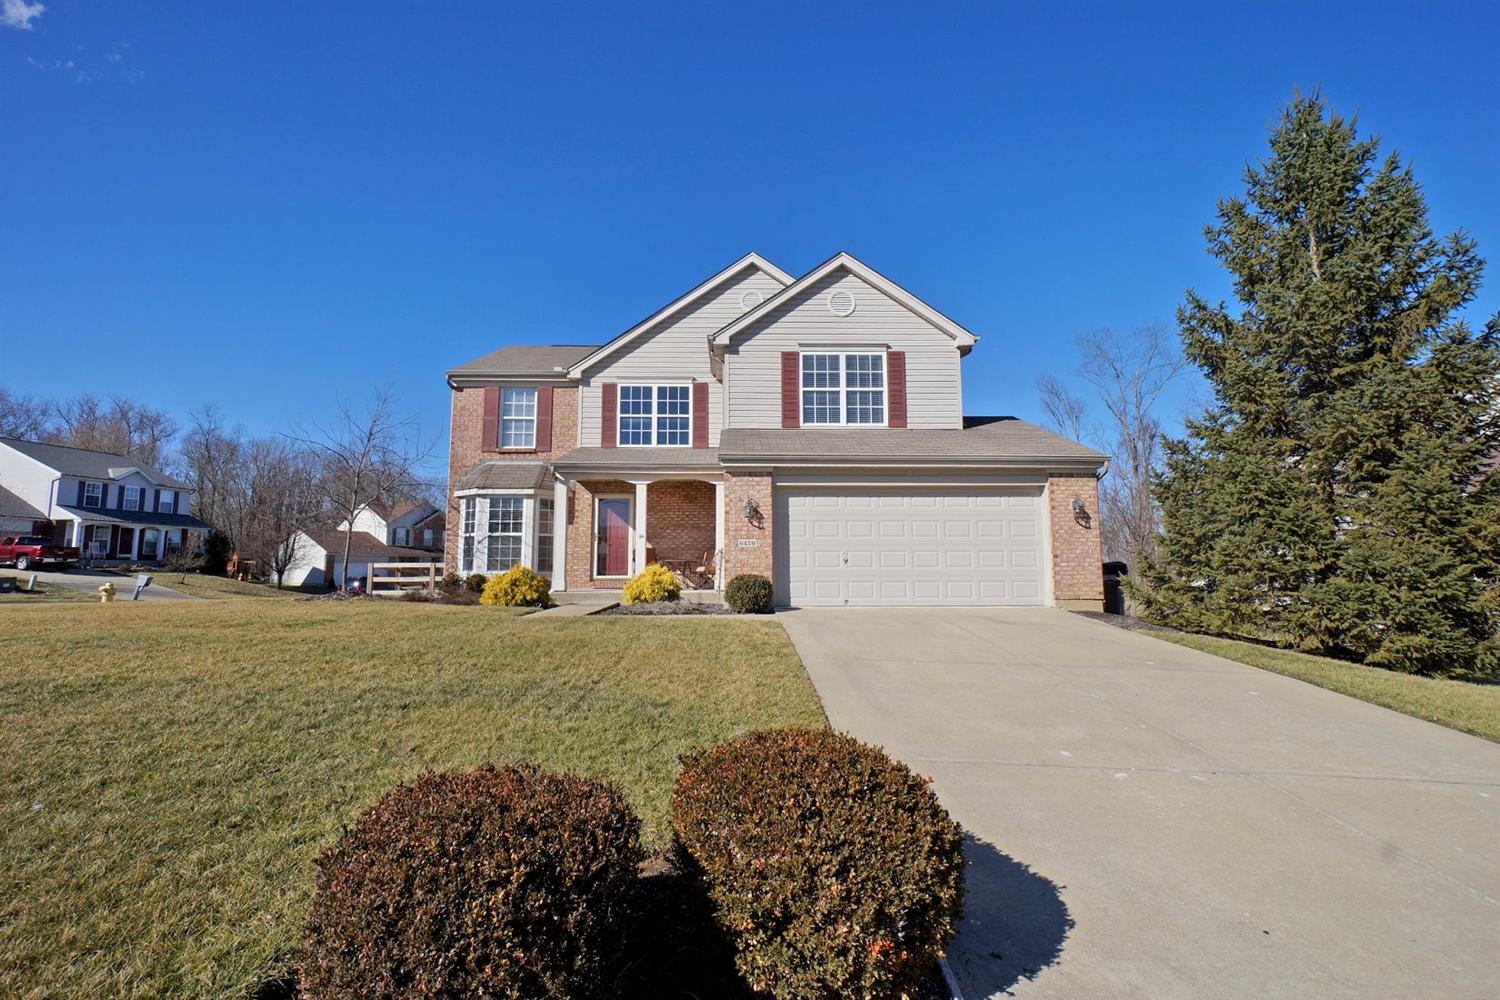 6459 Lakearbor Dr, Independence, KY 41051